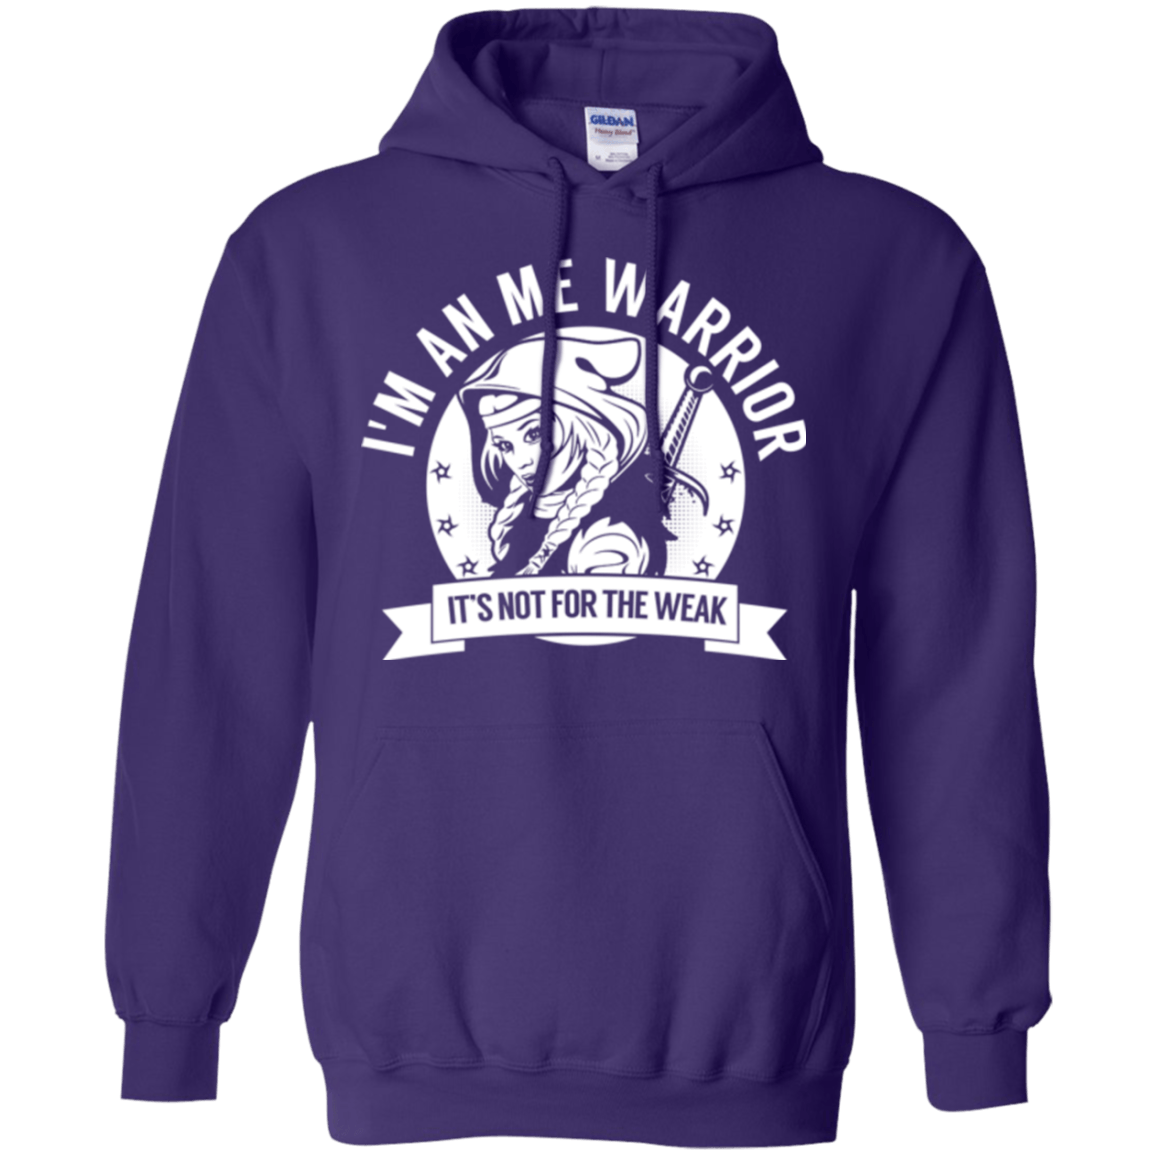 Myalgic Encephalomyelitis - ME Warrior Hooded Pullover Hoodie 8 oz. - The Unchargeables